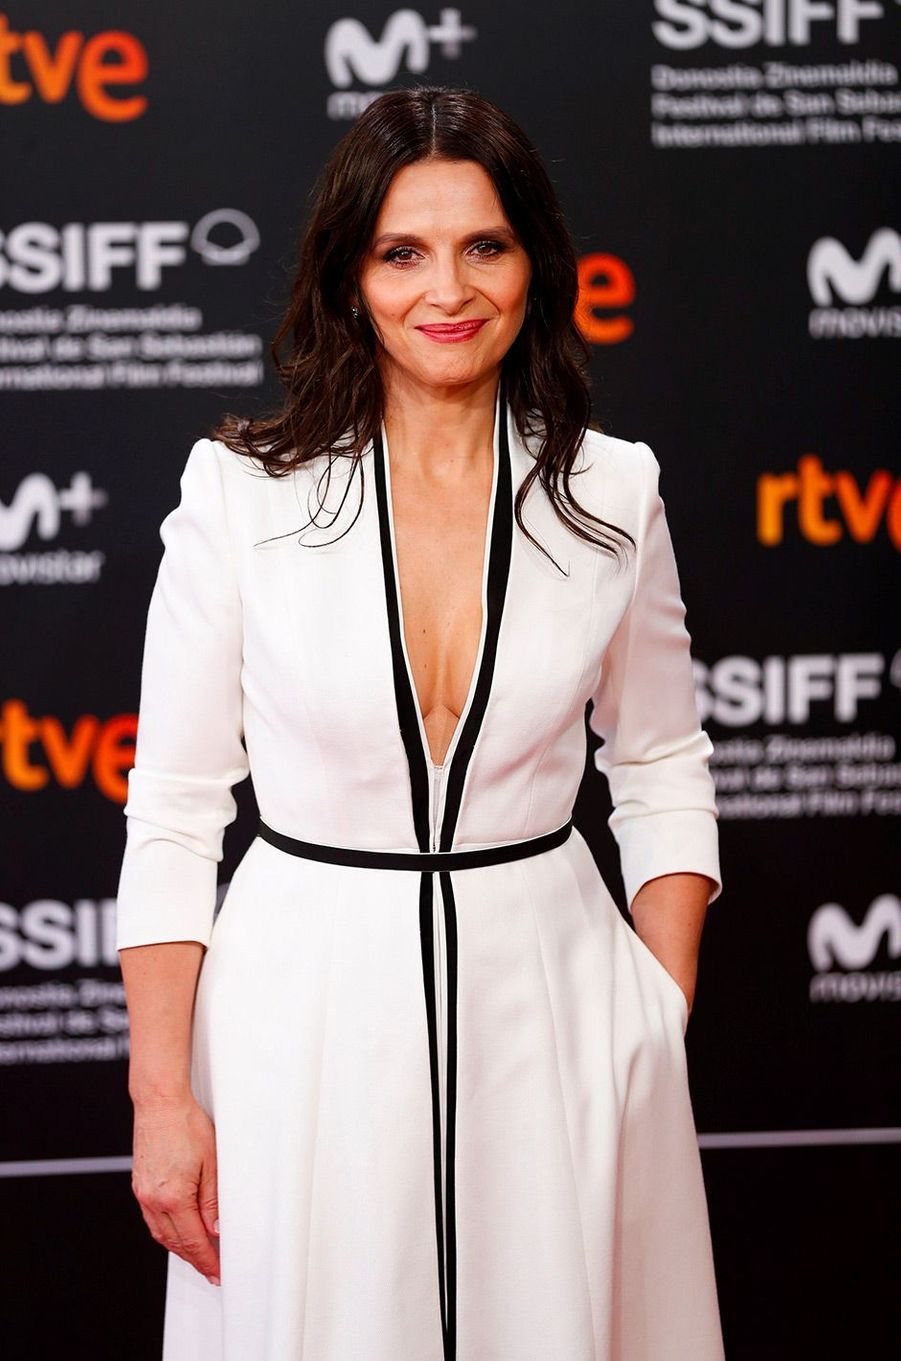 Juliette Binoche au festival du film international de San Sebastian, mercredi 26 septembre